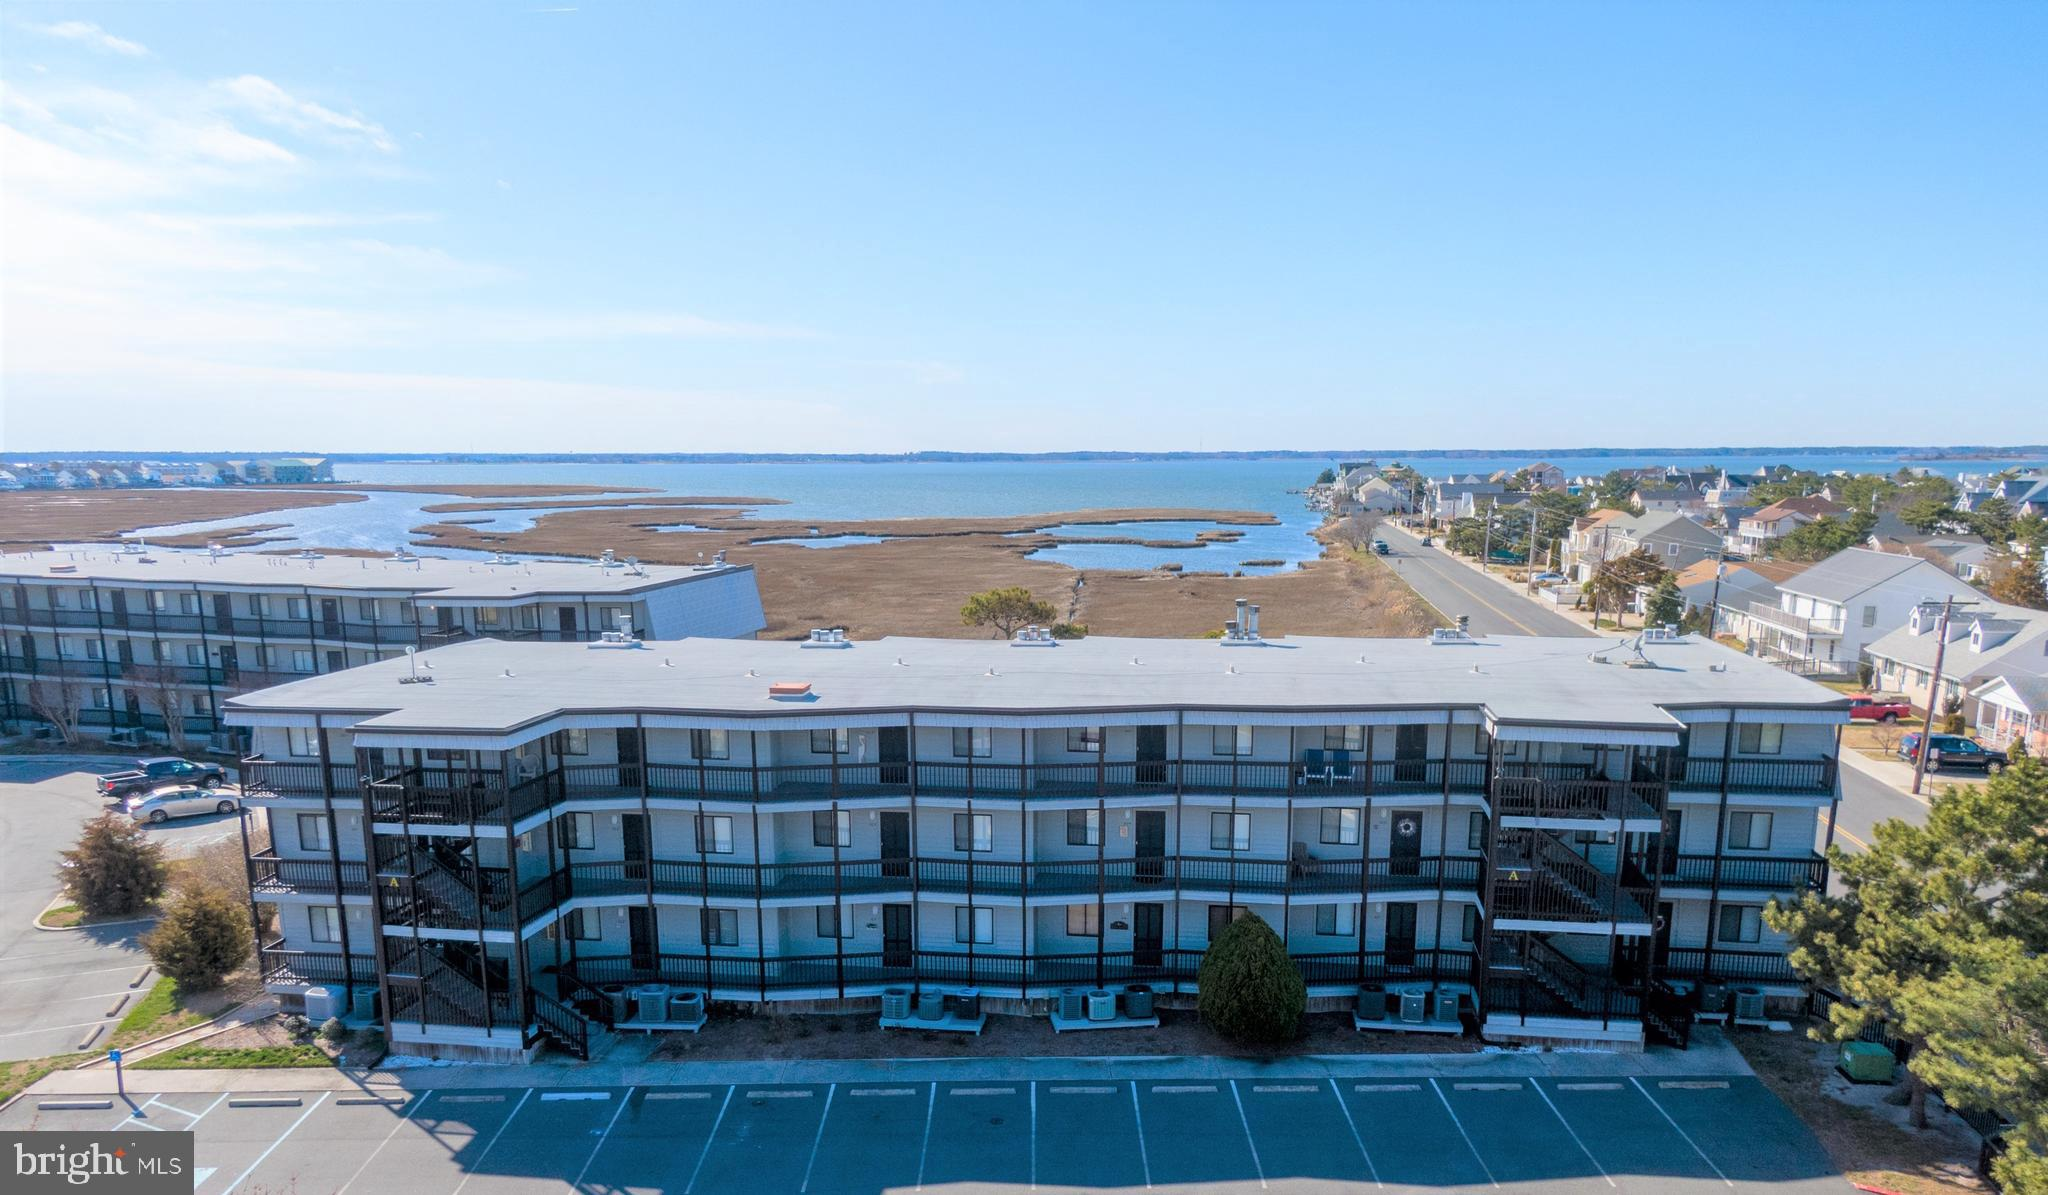 $2,500 seller credit being offered toward your dream beach kitchen w/ acceptable offer!!! Stunning bay views, huge community pool & only two blocks to the beach, you can have it all!! This well kept home has never been rented & is being offered fully furnished.  Relaxing decor with updated laminate flooring and even has a wood burning fireplace to enjoy in the offseason.  New exterior A/C installed this year. Community has ample parking and is professionally managed. Come see this view for yourself!